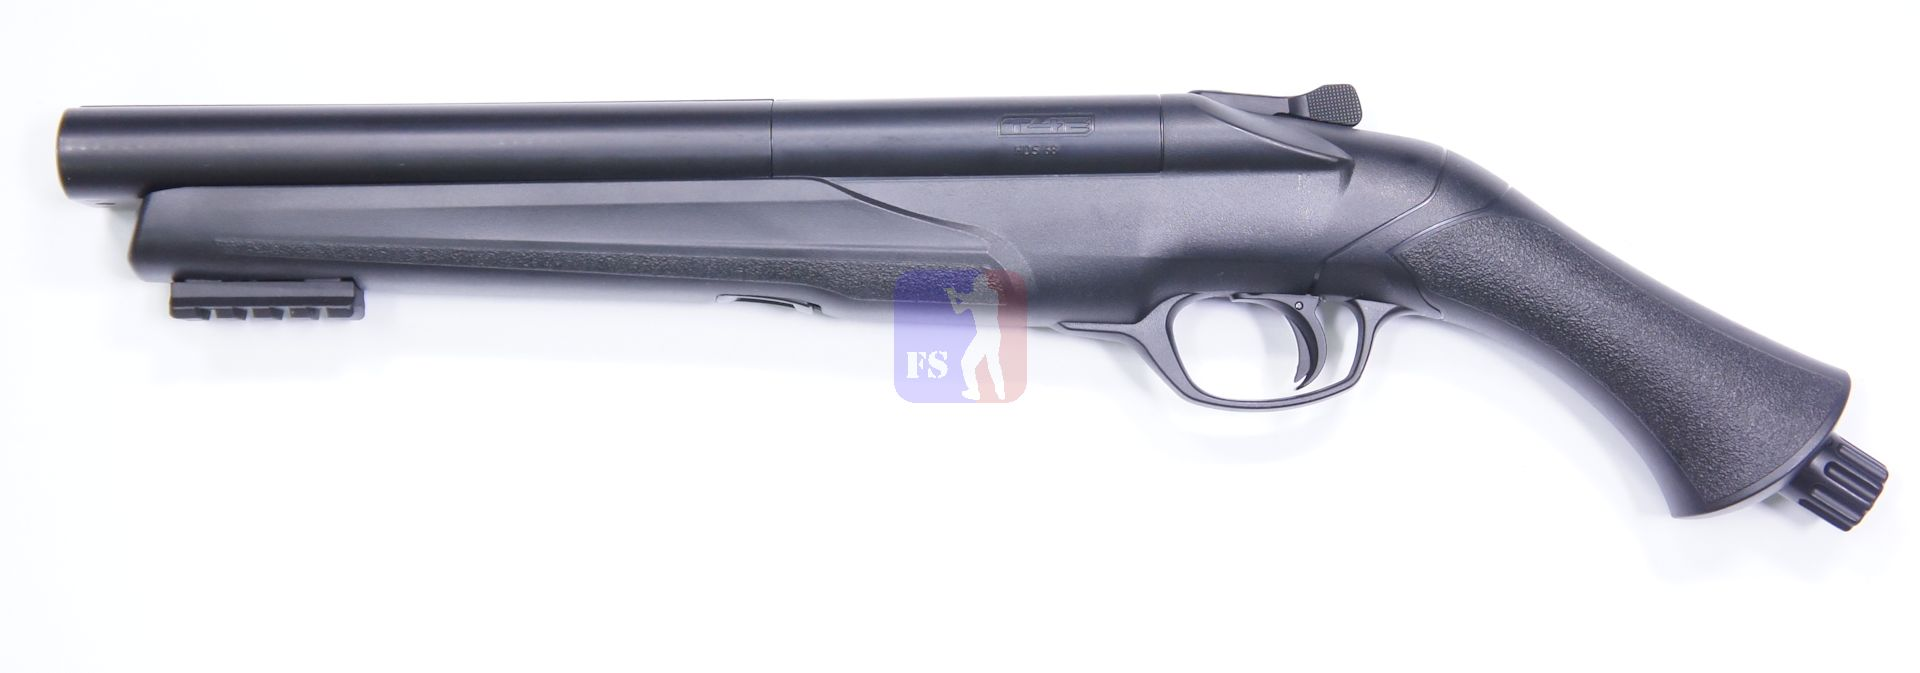 HDS 68, HOME DEFENCE SHOTGUN, CO2 Flinte im Kaliber 68